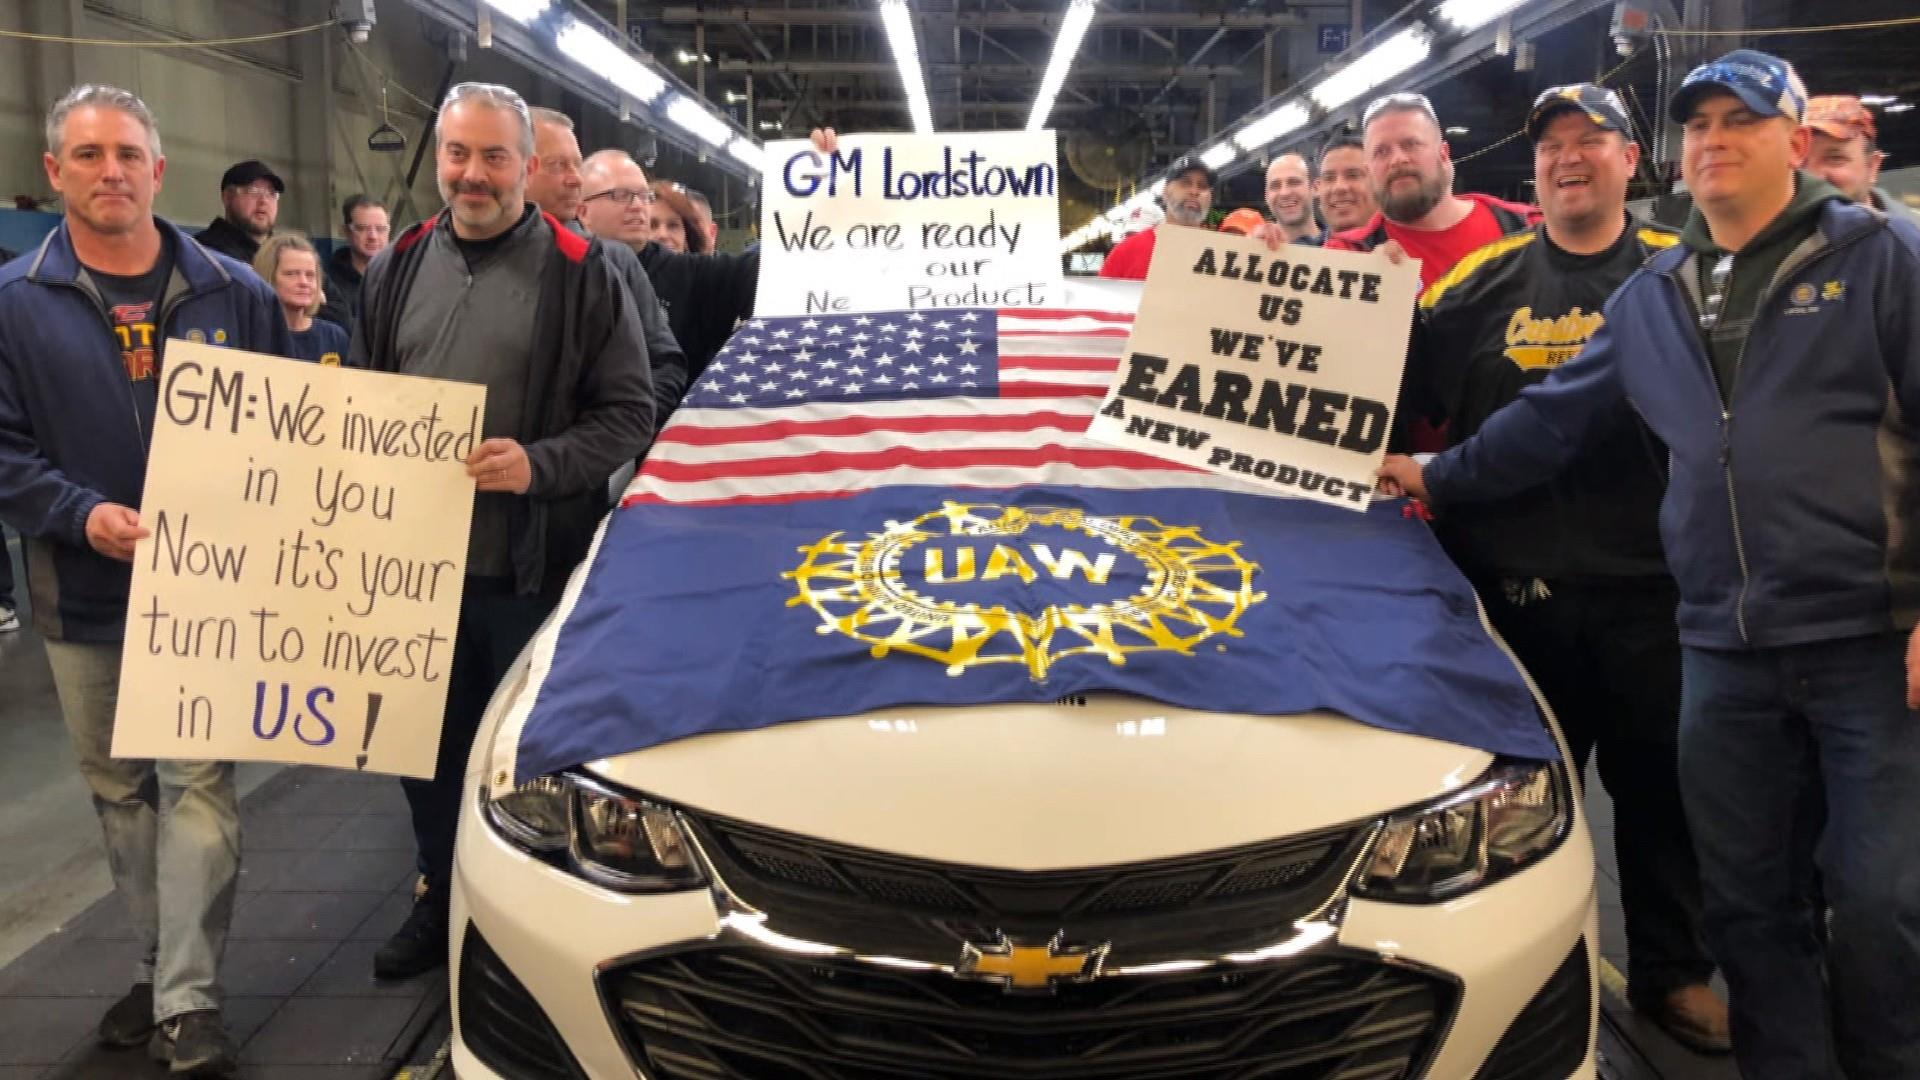 GM to invest $700 million in Ohio, create 450 new jobs